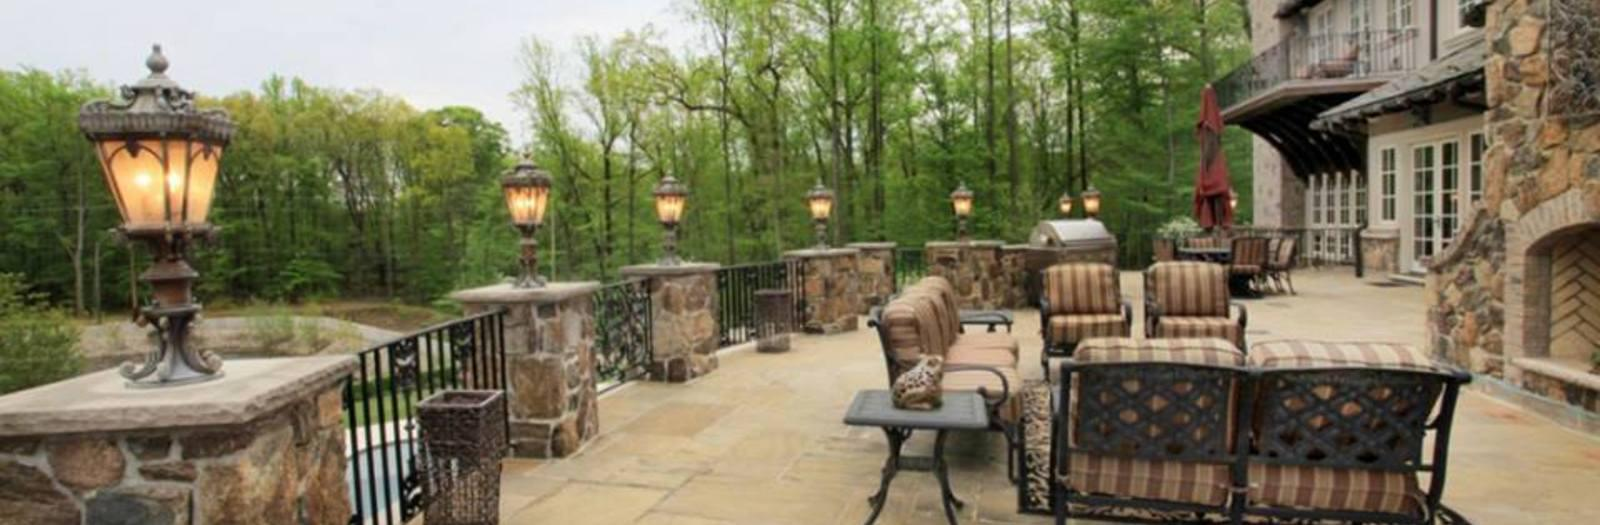 Traditional Deck with stone pillars with lanterns